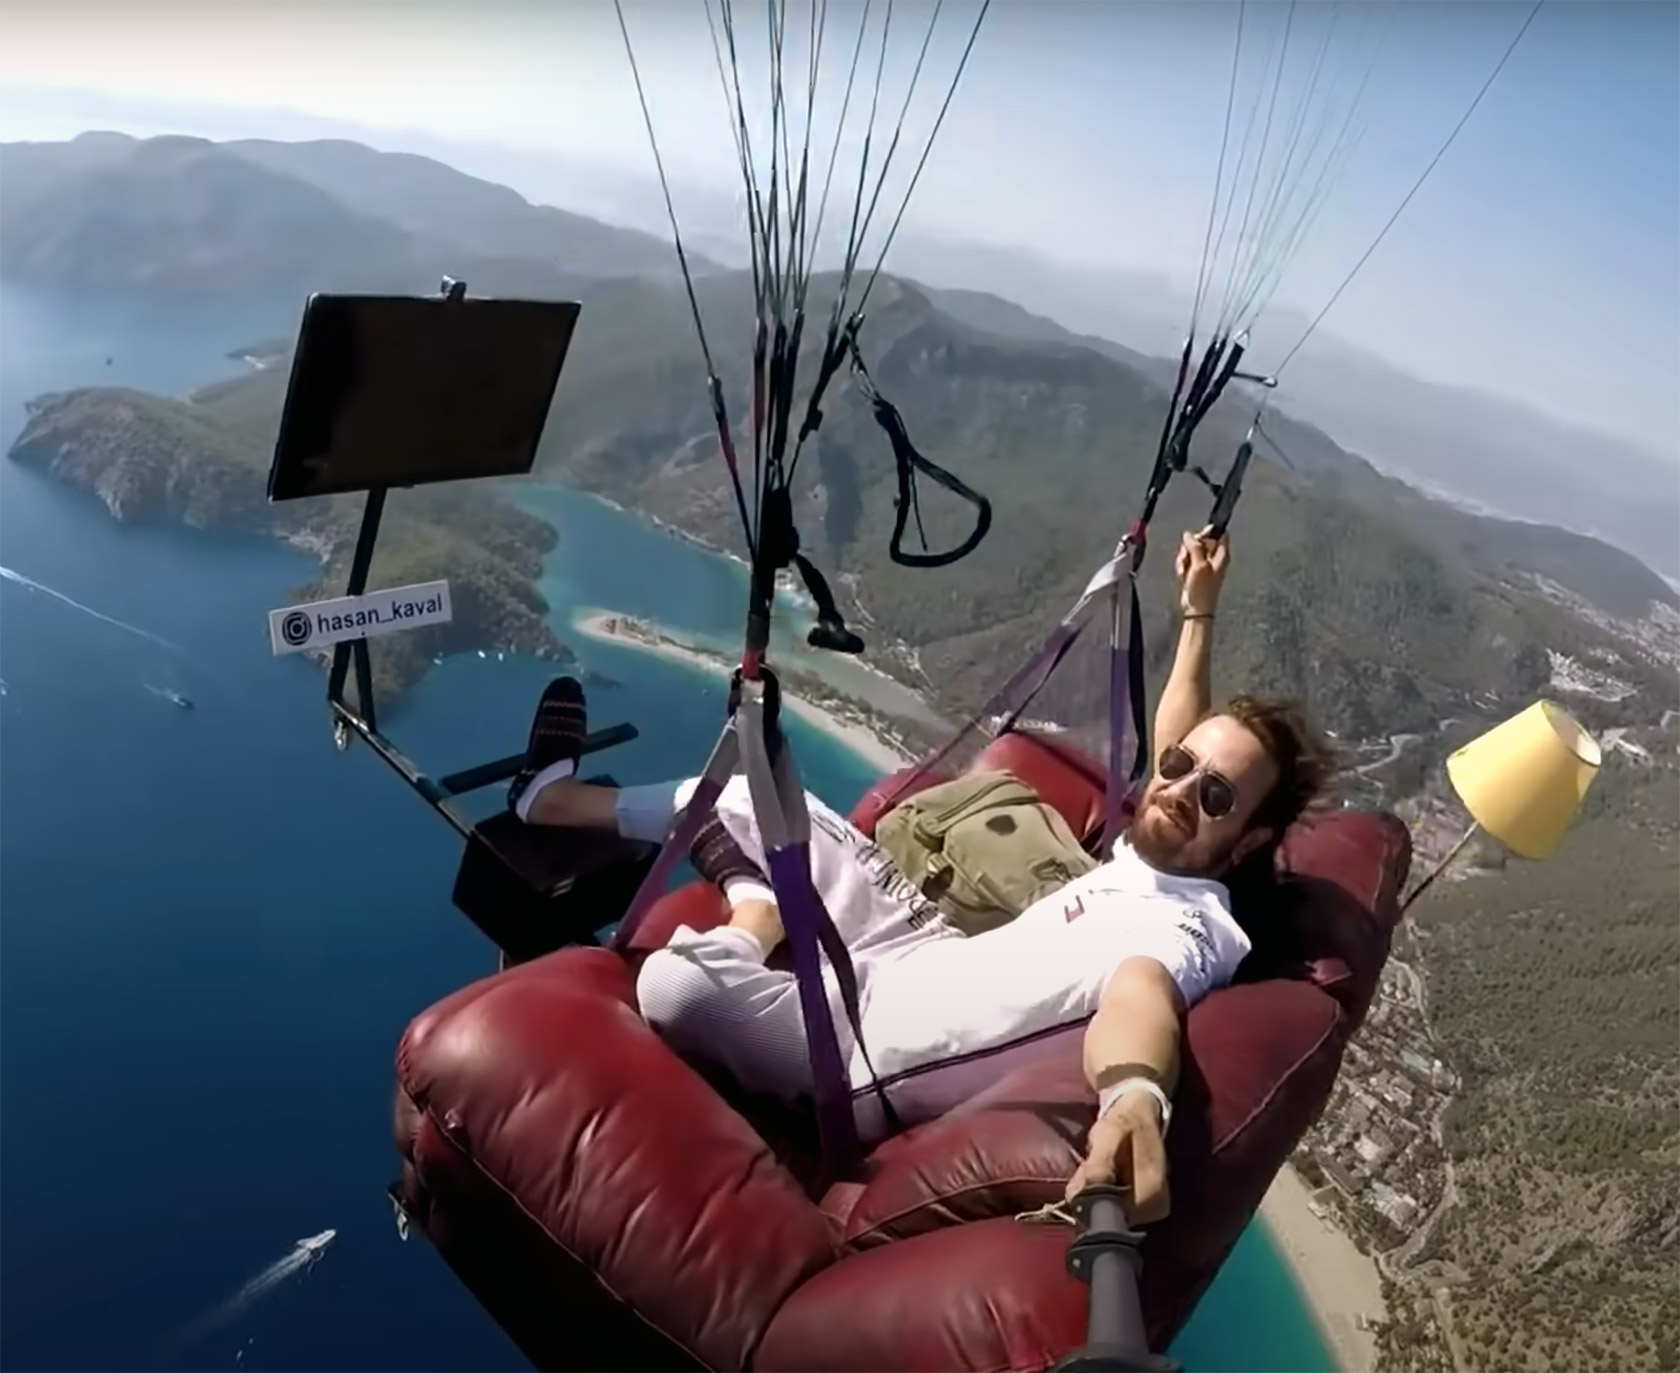 Hasan Kaval Turkish Paragliding Couch Potato TV